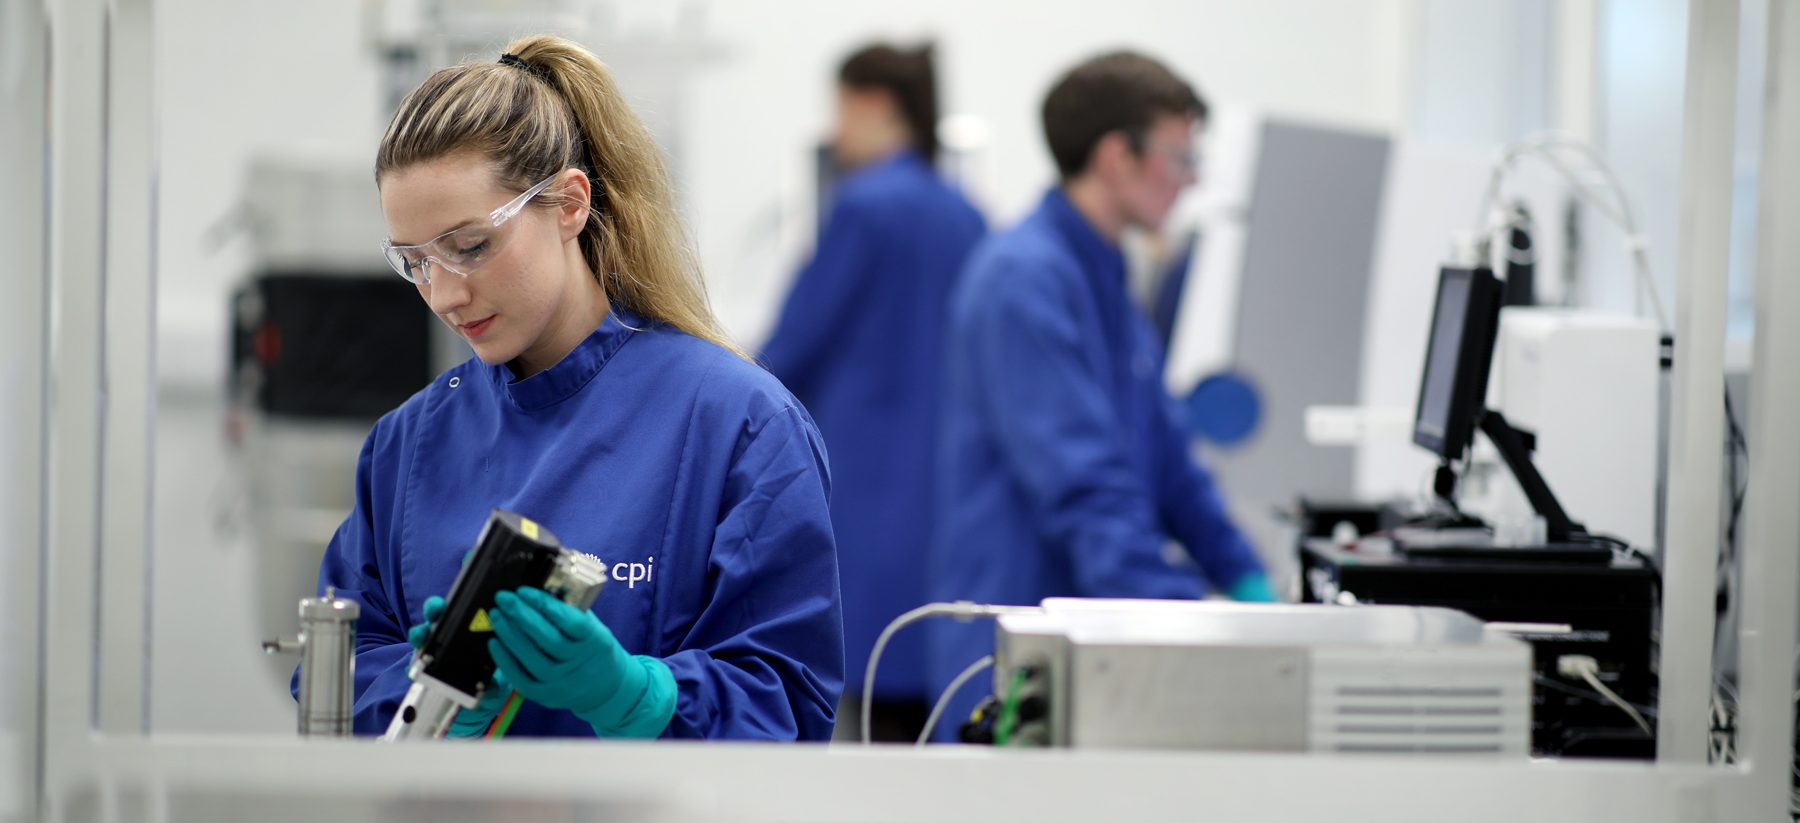 CPI's cutting-edge National Biologics Manufacturing Centre in Darlington carries out bioprocessing projects that aren't currently possible within industry. Image: CPI